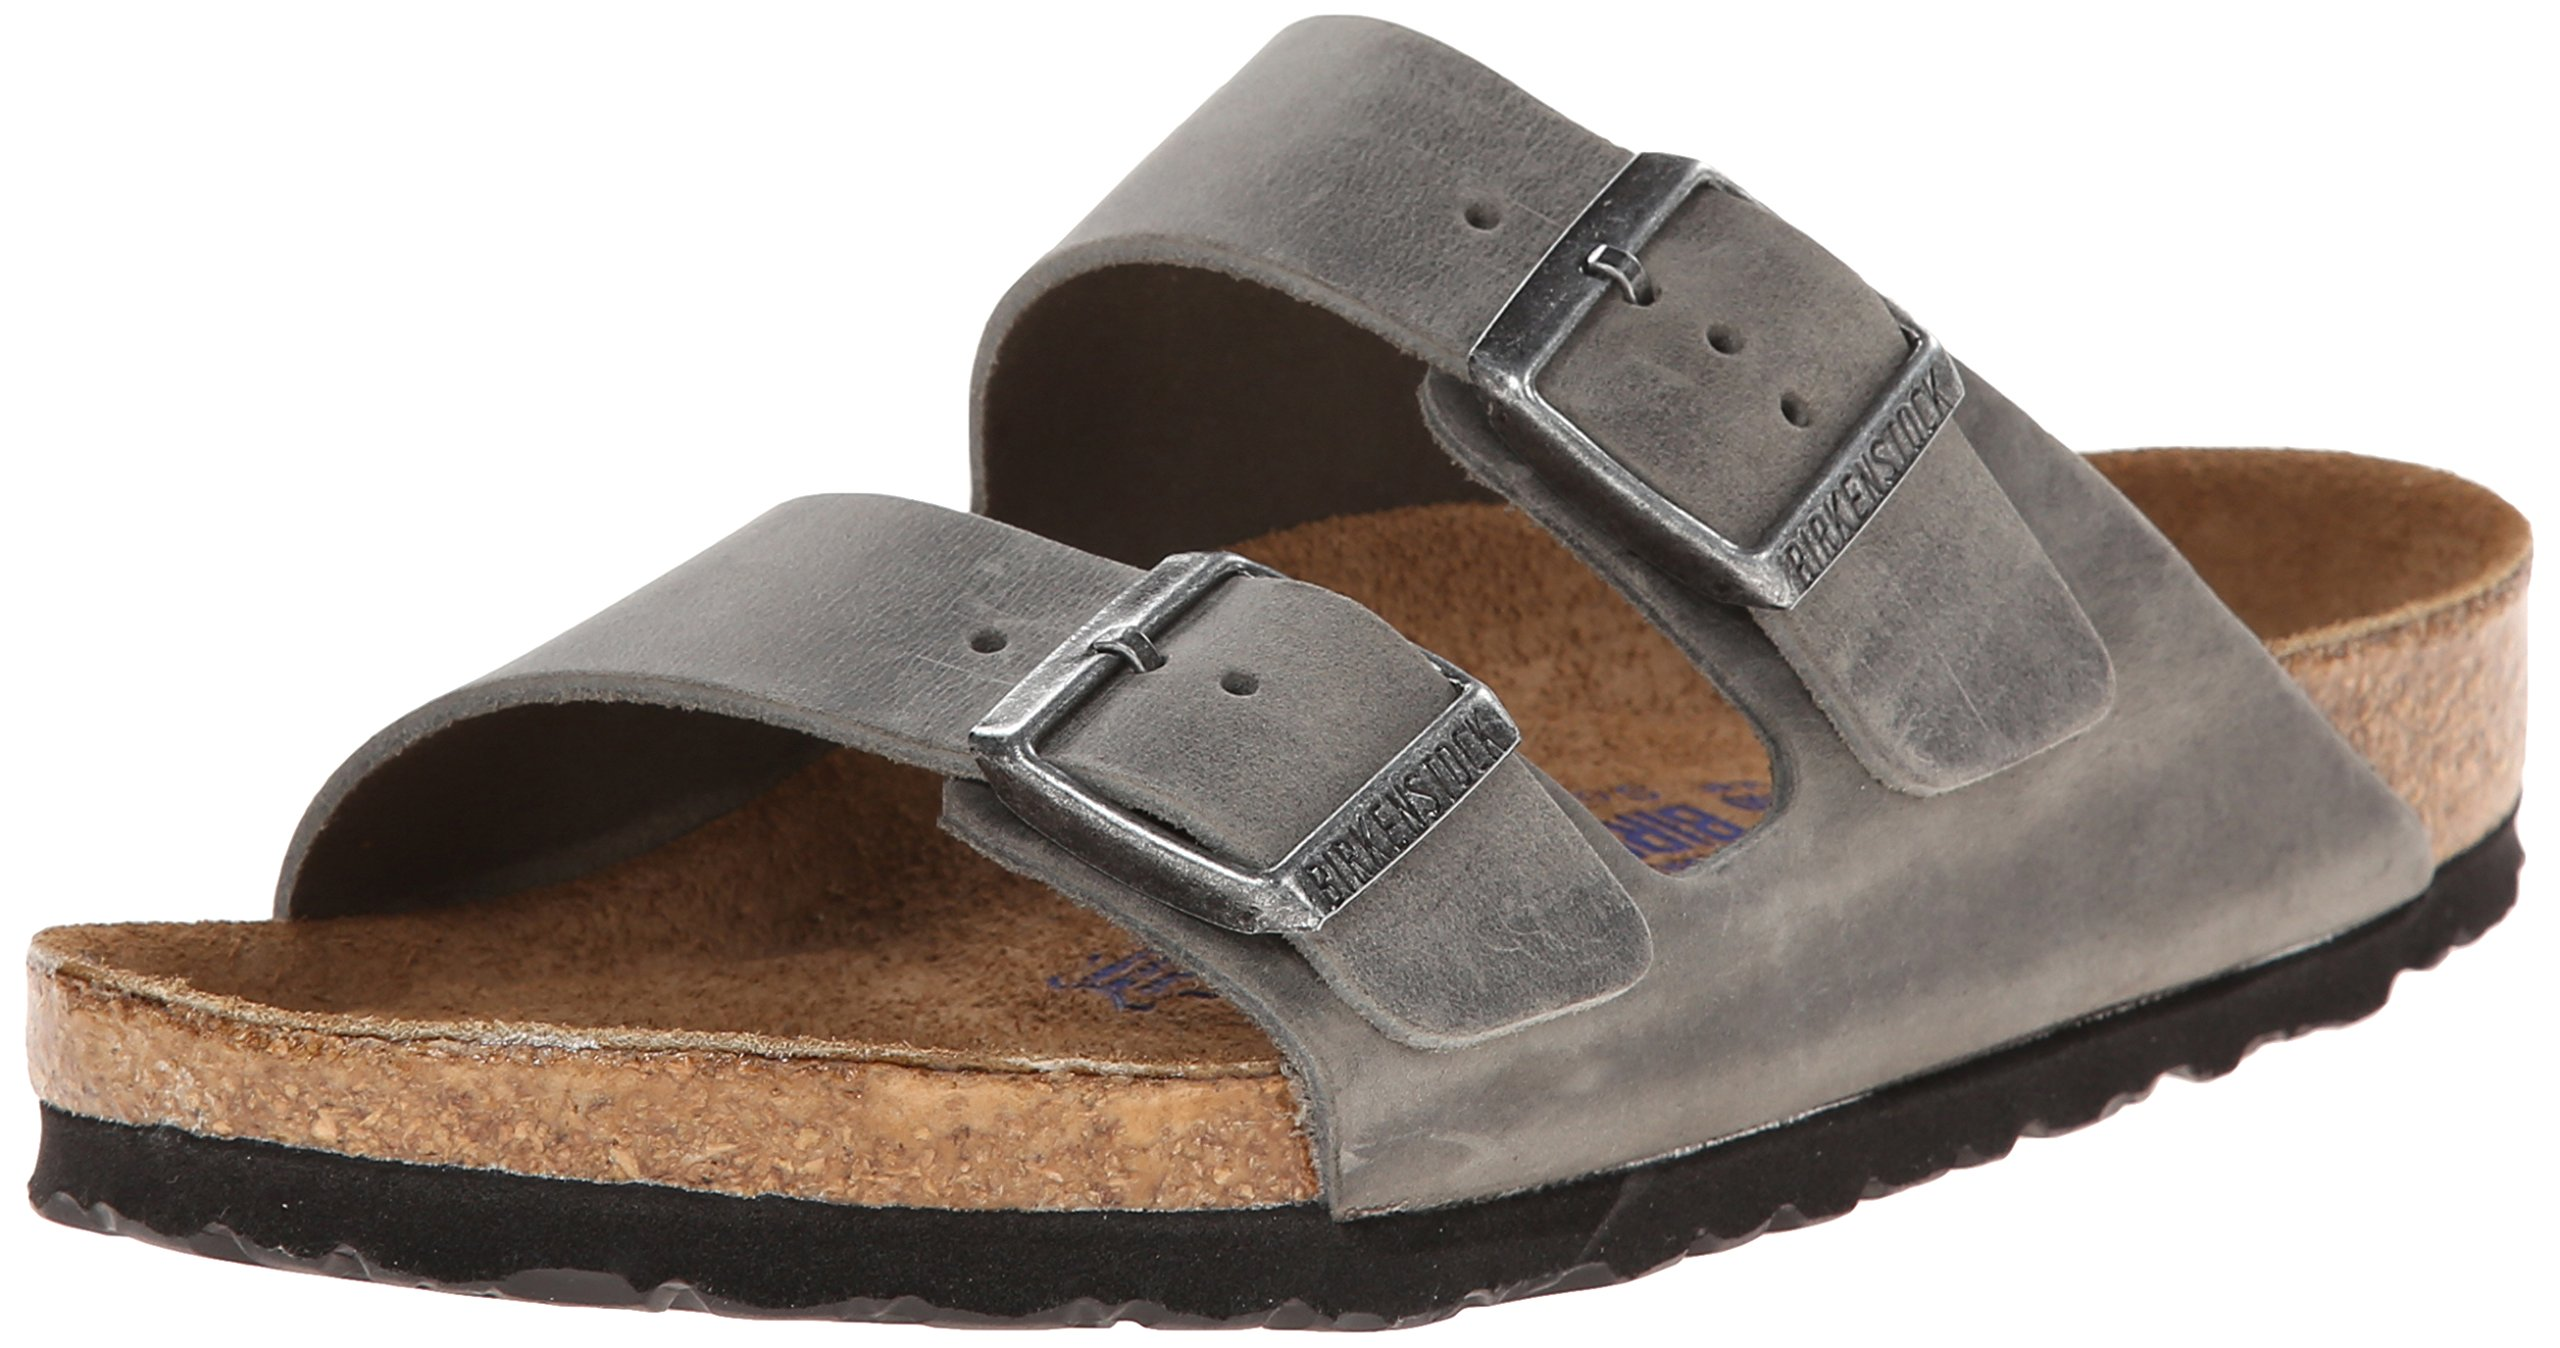 Birkenstock Unisex Arizona Iron Oiled Leather Sandals - 46 M EU/13-13.5 B(M) US Men